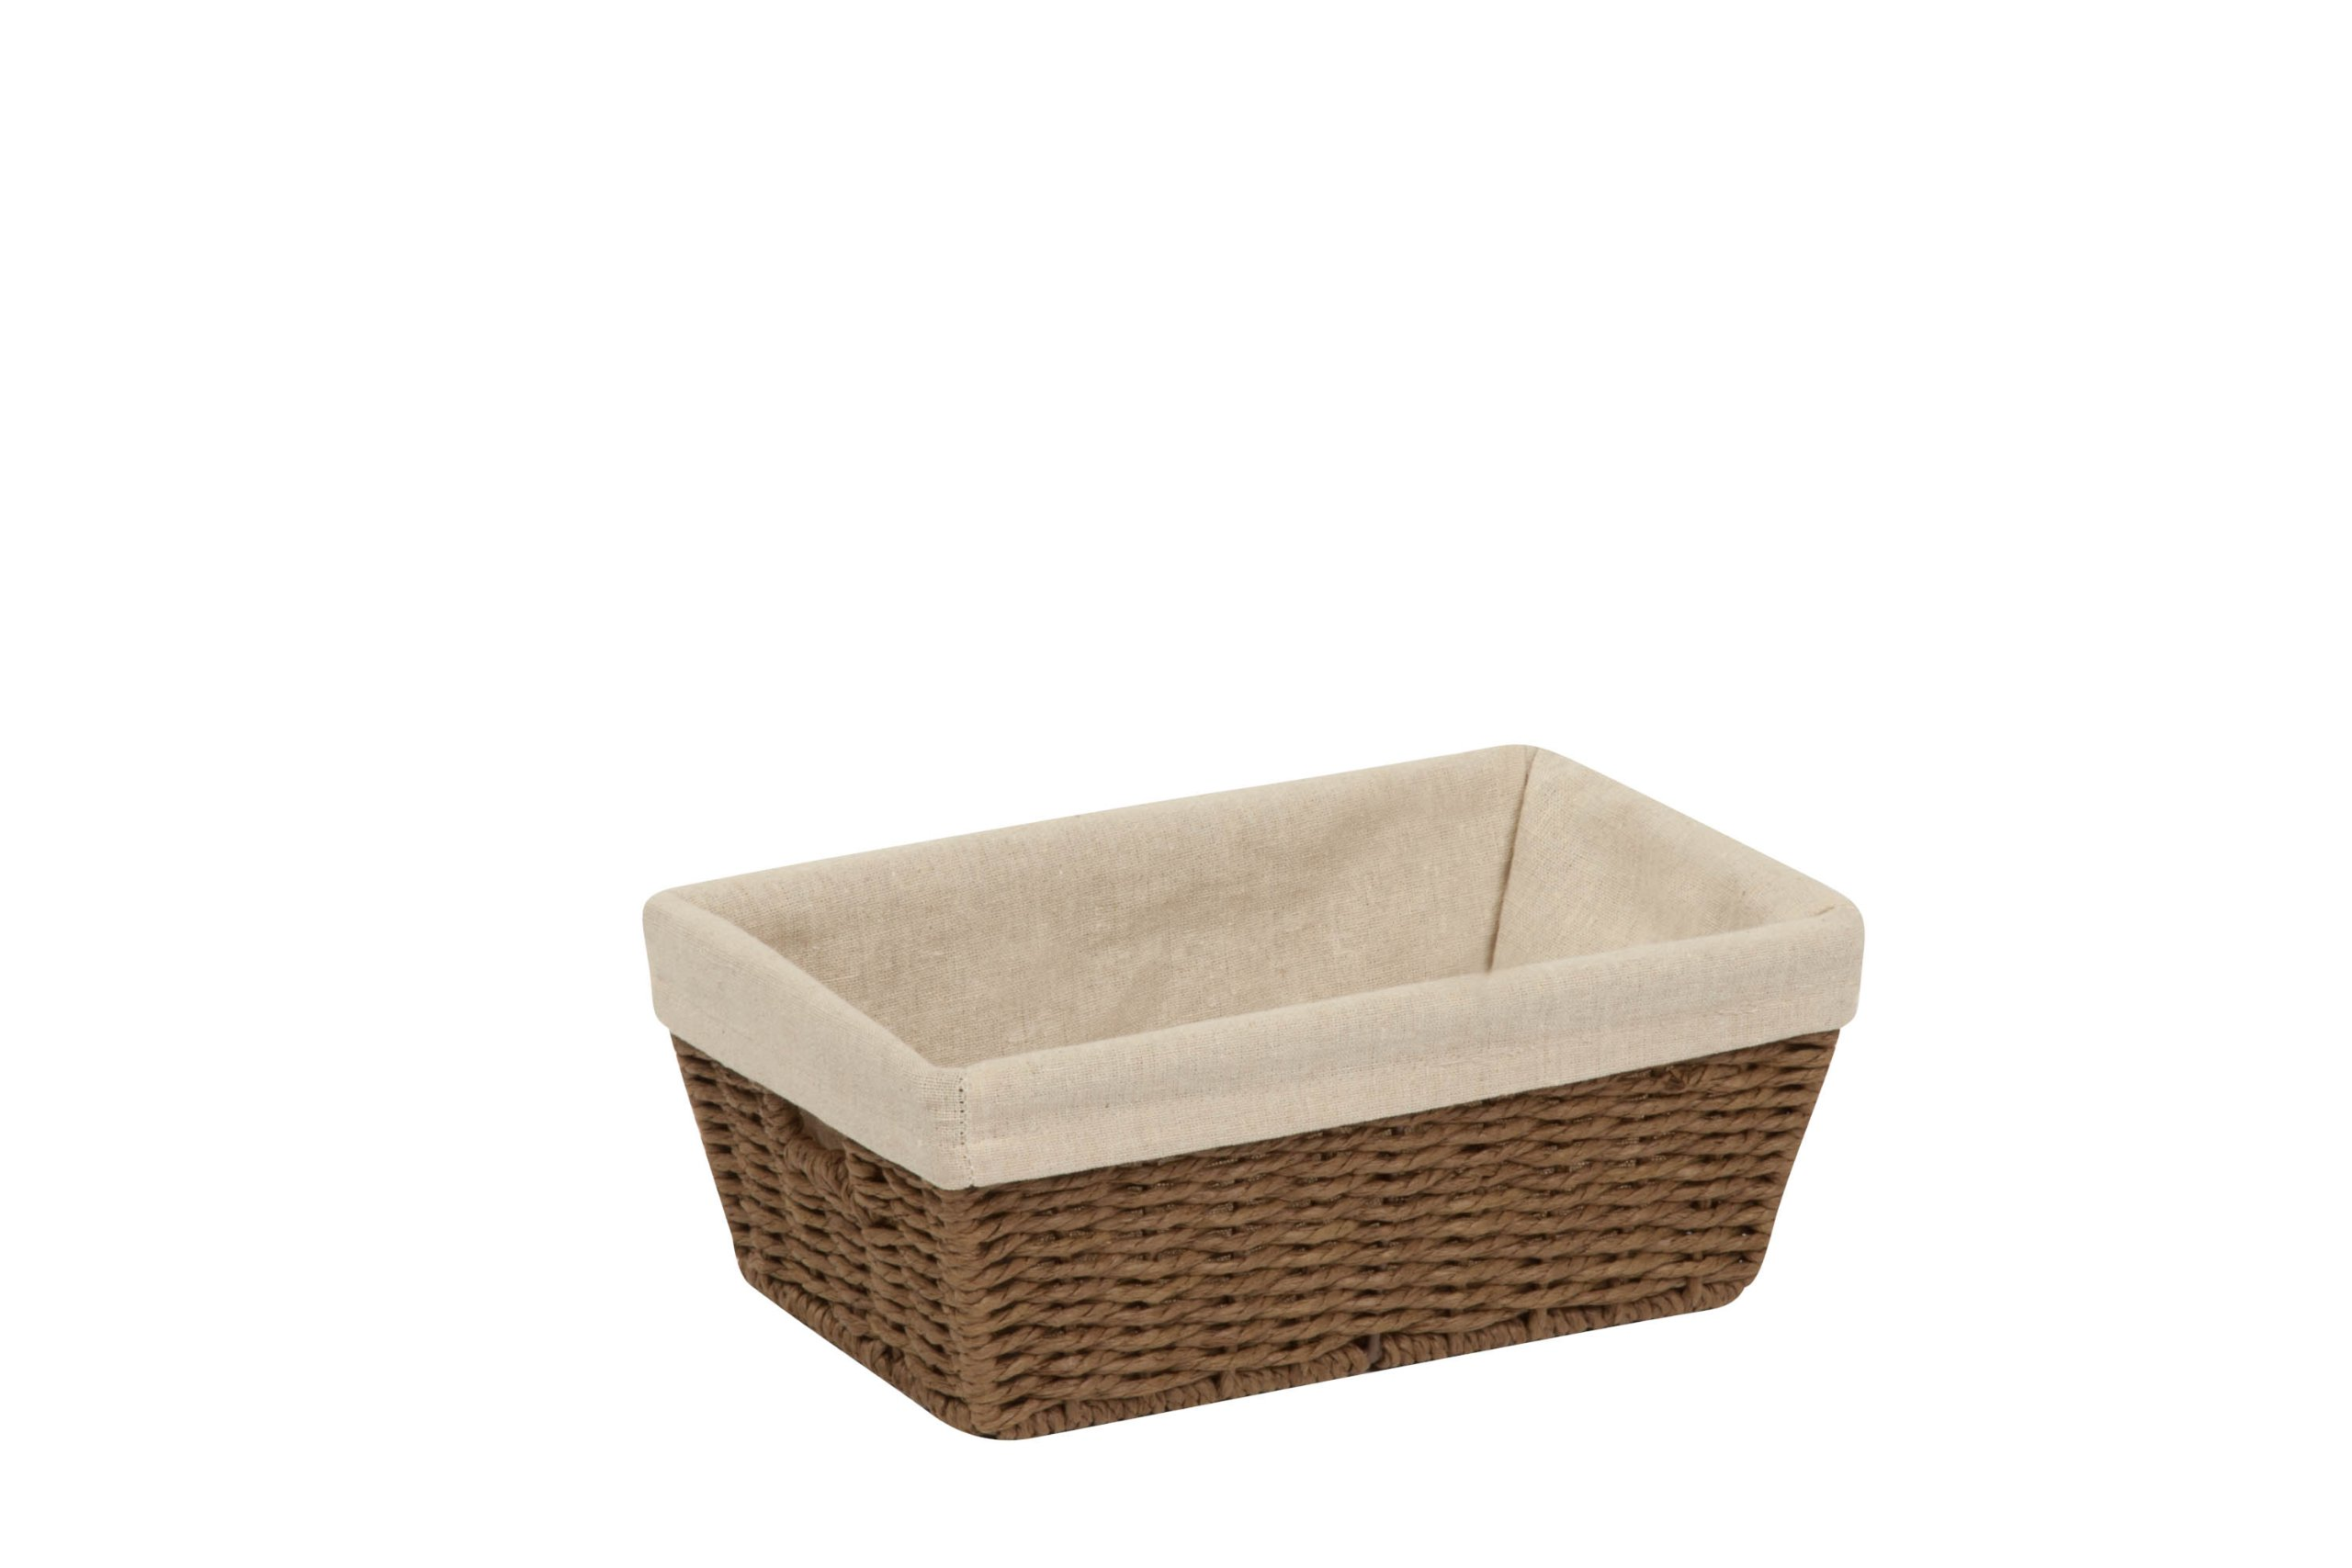 Honey-Can-Do STO-03563 Parchment Cord Basket with Handles and Liner, Brown, 6.89 x 11 x 4.5 inches